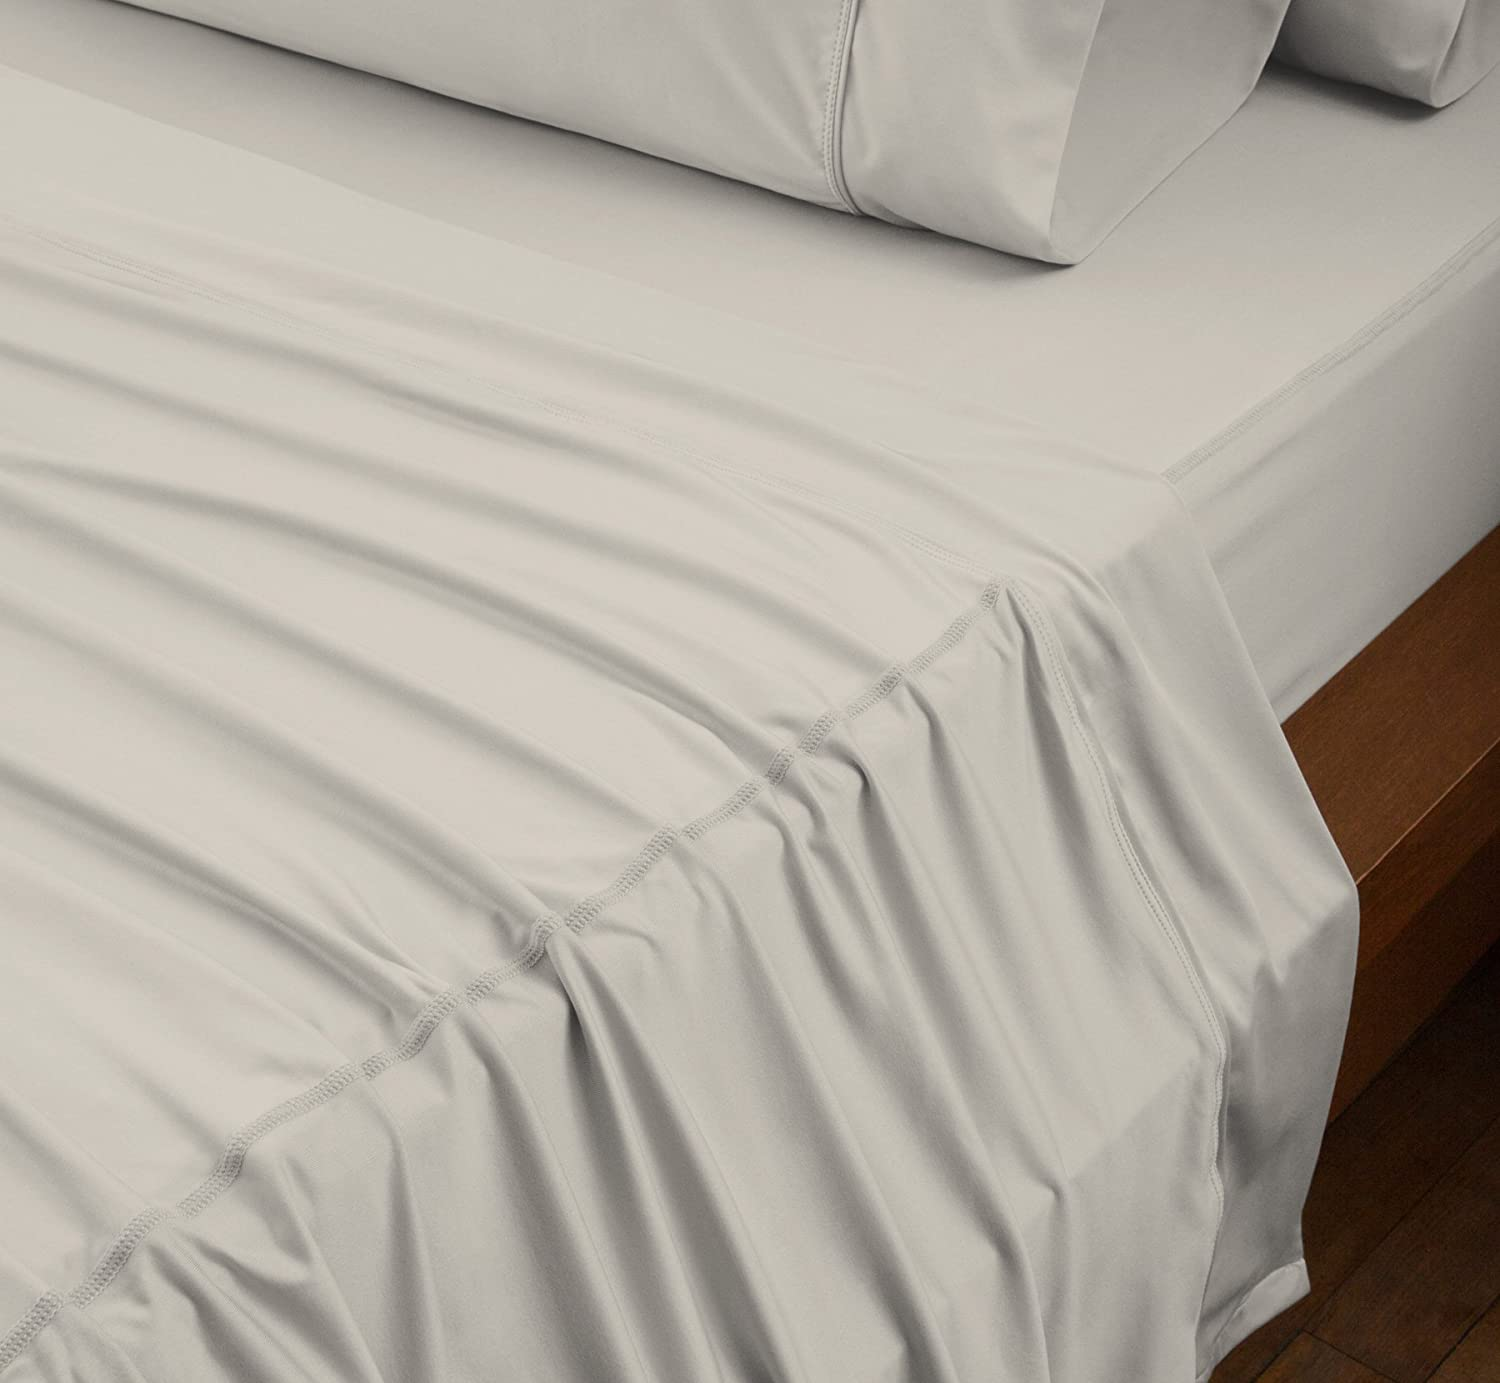 Khaki Original Performance Fitted Sheet Twin 1 Fitted Sheet ONLY One Ultra-Soft Fabric Transfers Body Heat Breathes Better Than Traditional Cotton SHEEX